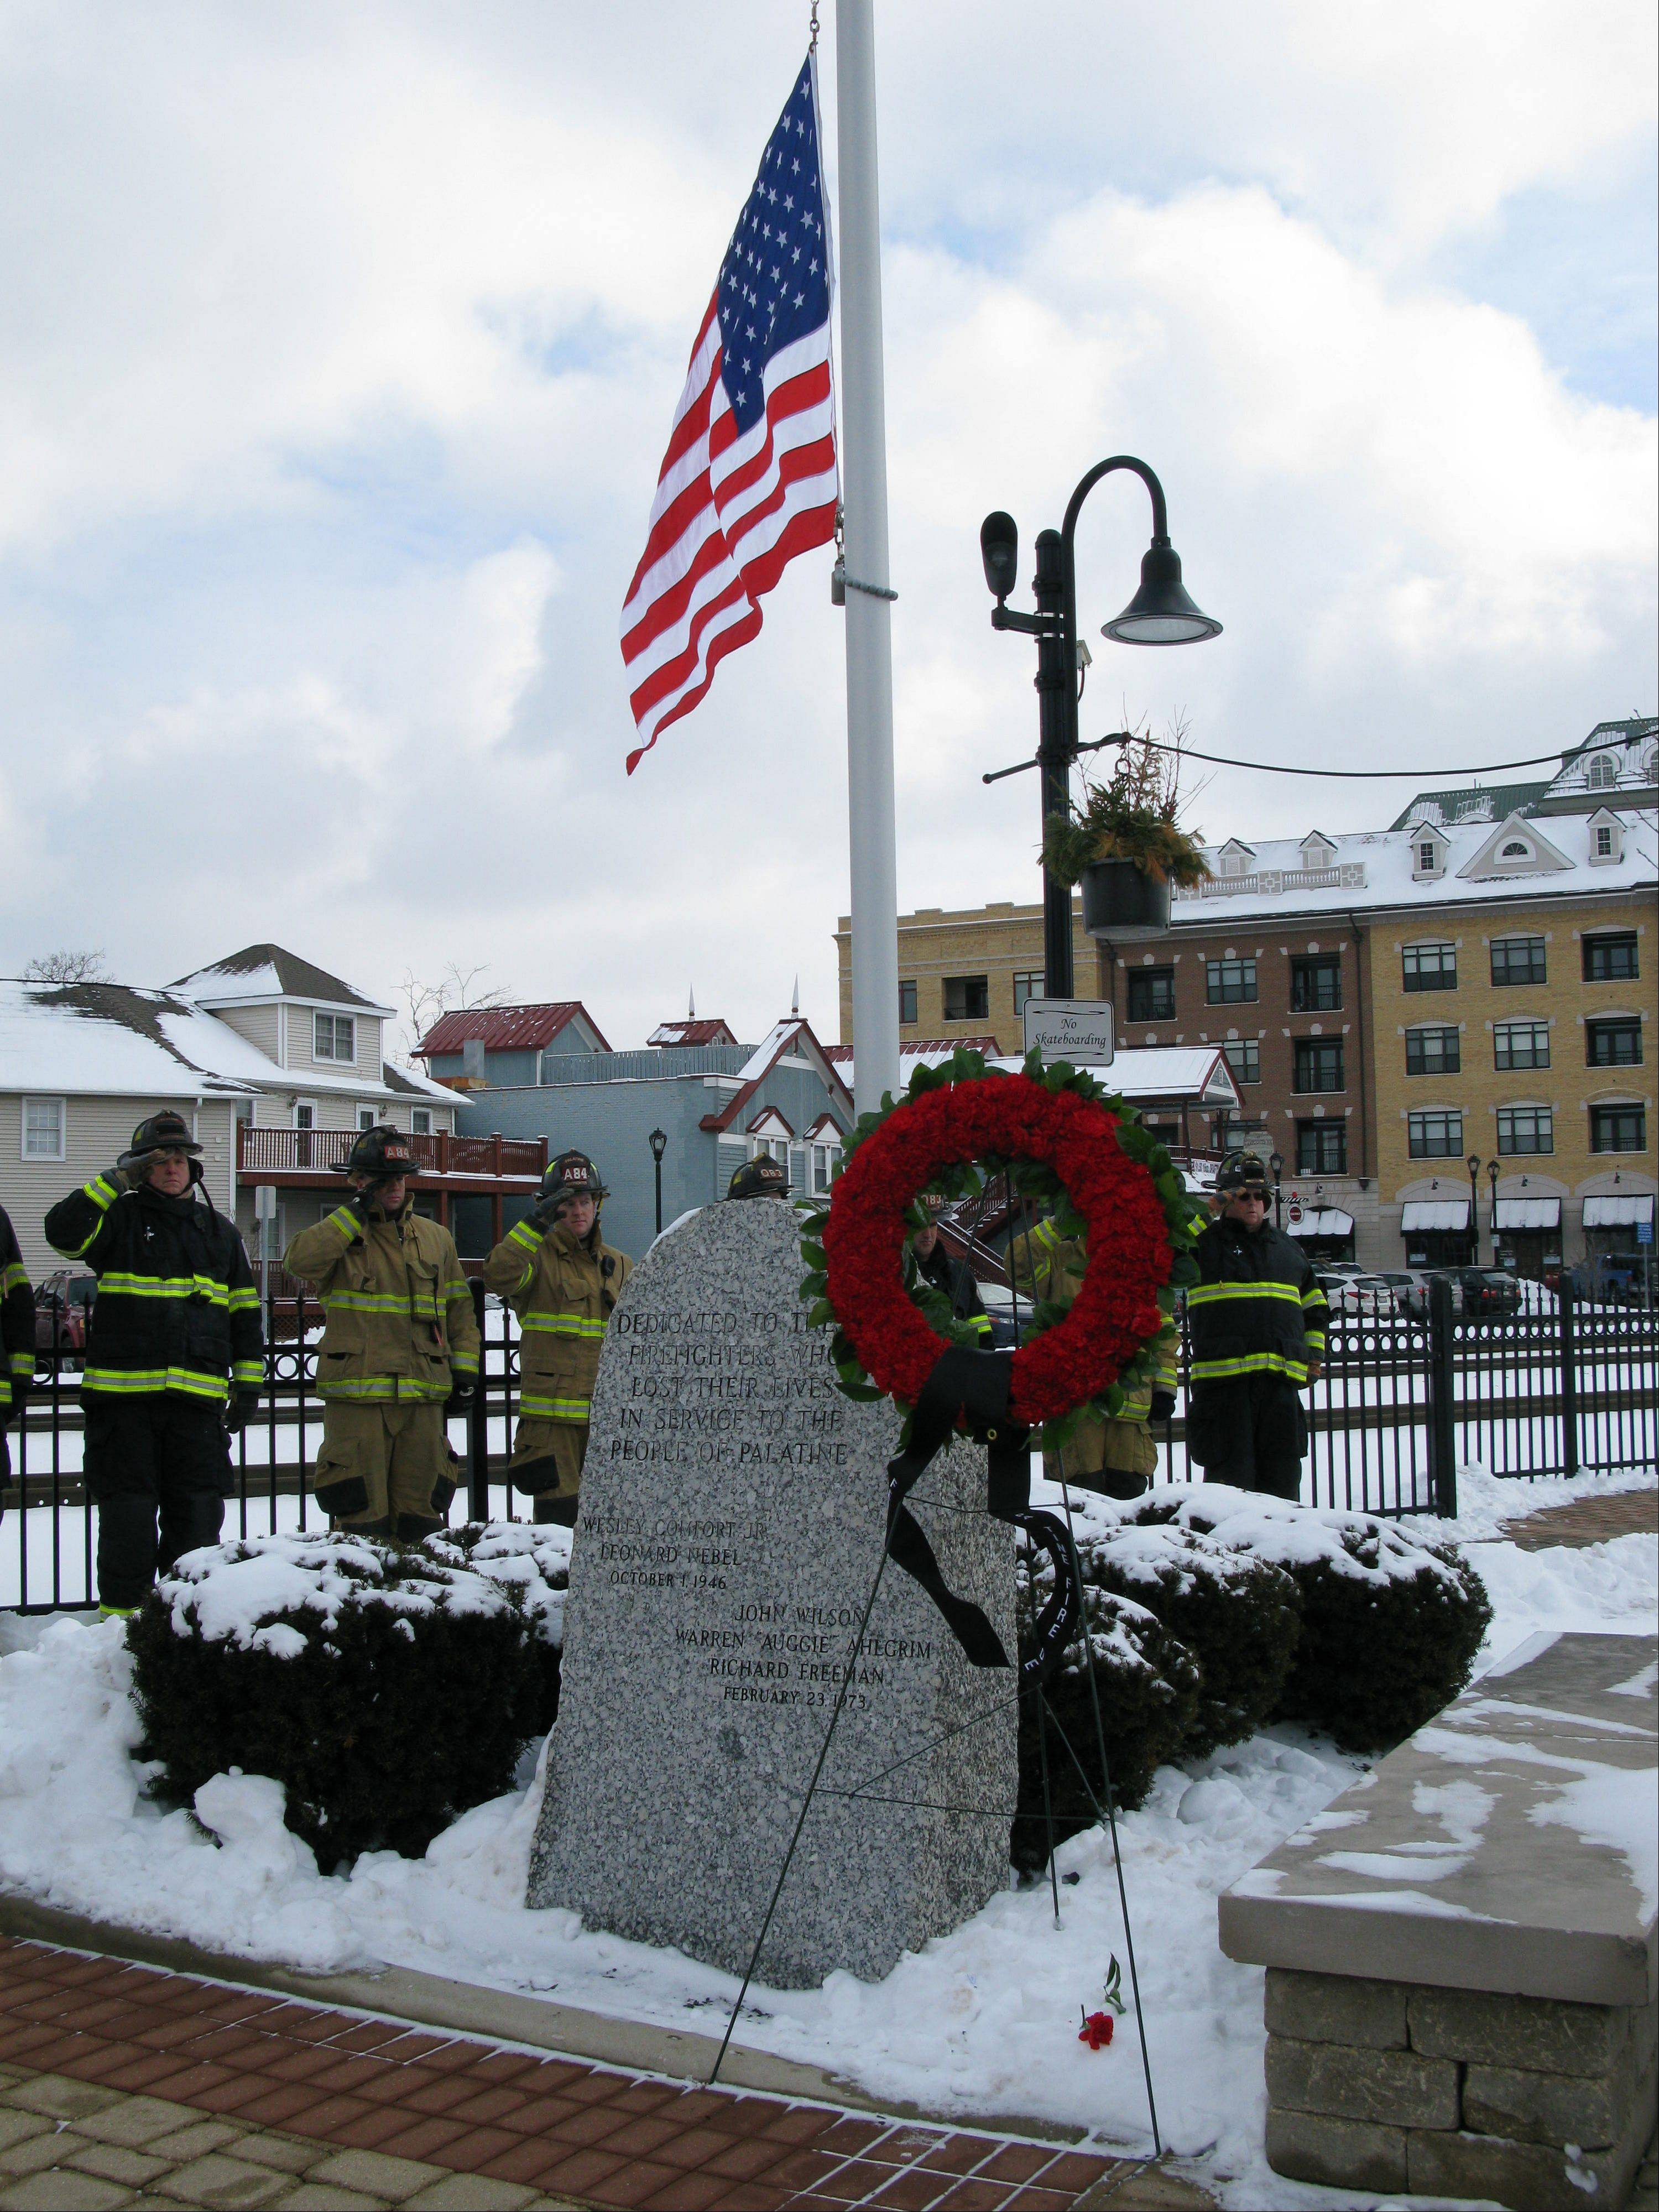 A wreath was placed Saturday on the memorial for three fallen volunteer Palatine firefighters, John Wilson, Richard Freeman and Warren Ahlgrim, who perished during a fire rescue on Feb. 23, 1973. Roughly 200 people, including firefighters from area departments, attended a ceremony honoring their memory and commemorating the 40th anniversary of their deaths at the Palatine Firefighters Memorial.